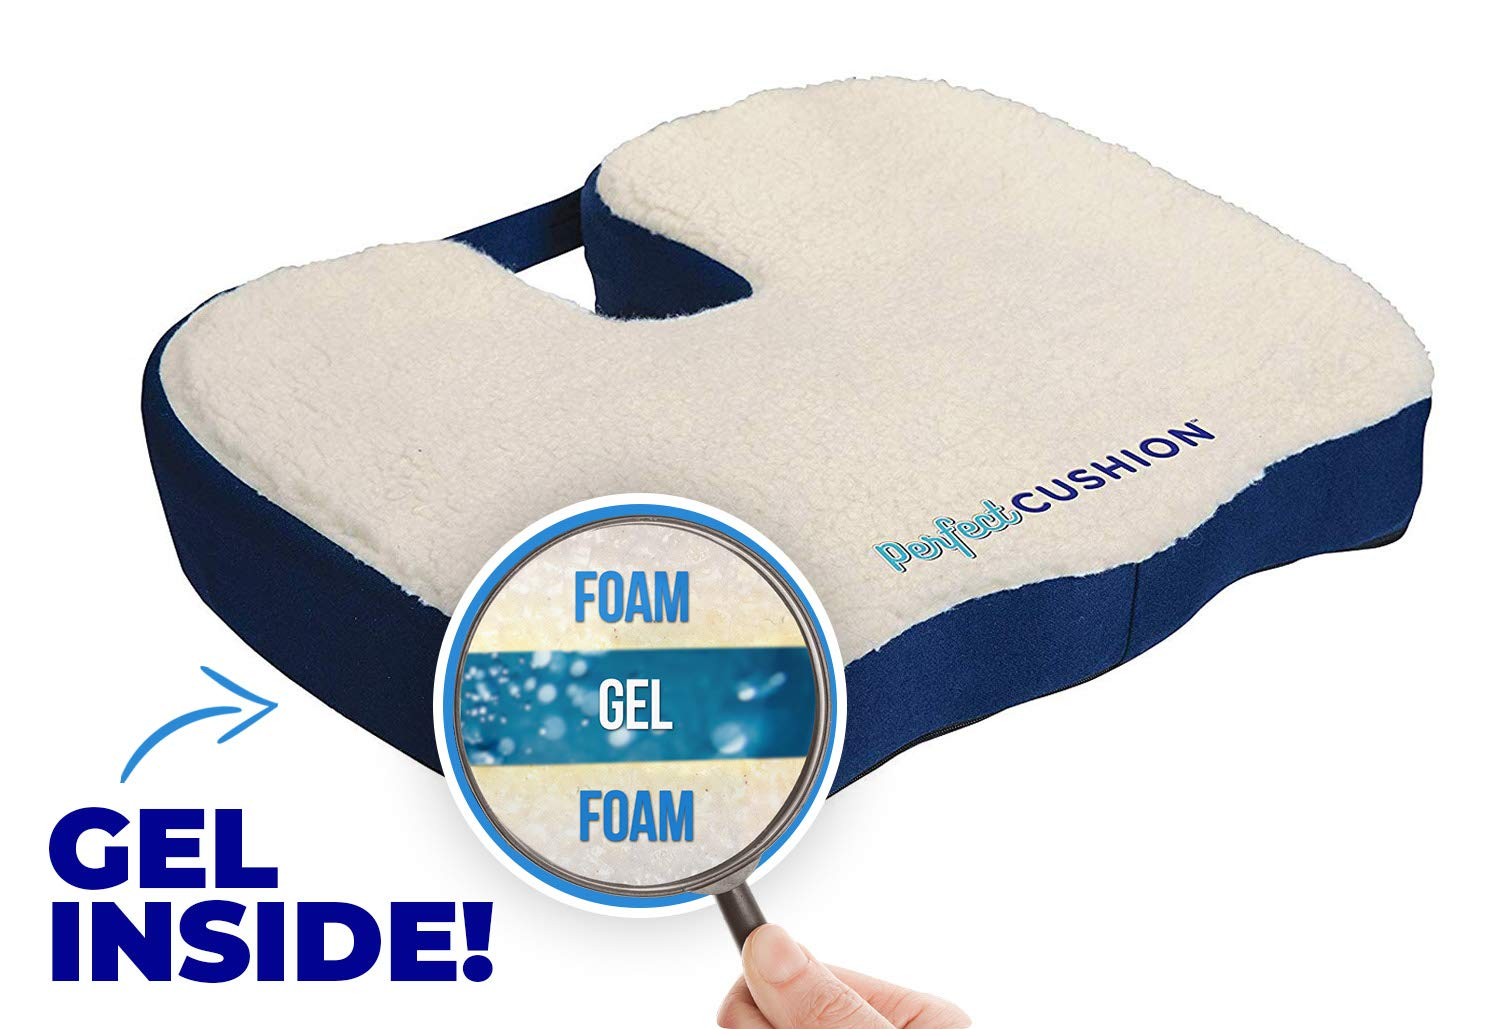 Perfect Cushion, Memory Foam & Gel Seat; Quality & Therapeutic Comfort Designed to Cradle & Support Your Body; Built in Carry Handle & Anti-Slip Bottom. Helps to relieve Back, Hip & Tailbone Pain by Allstar Innovations